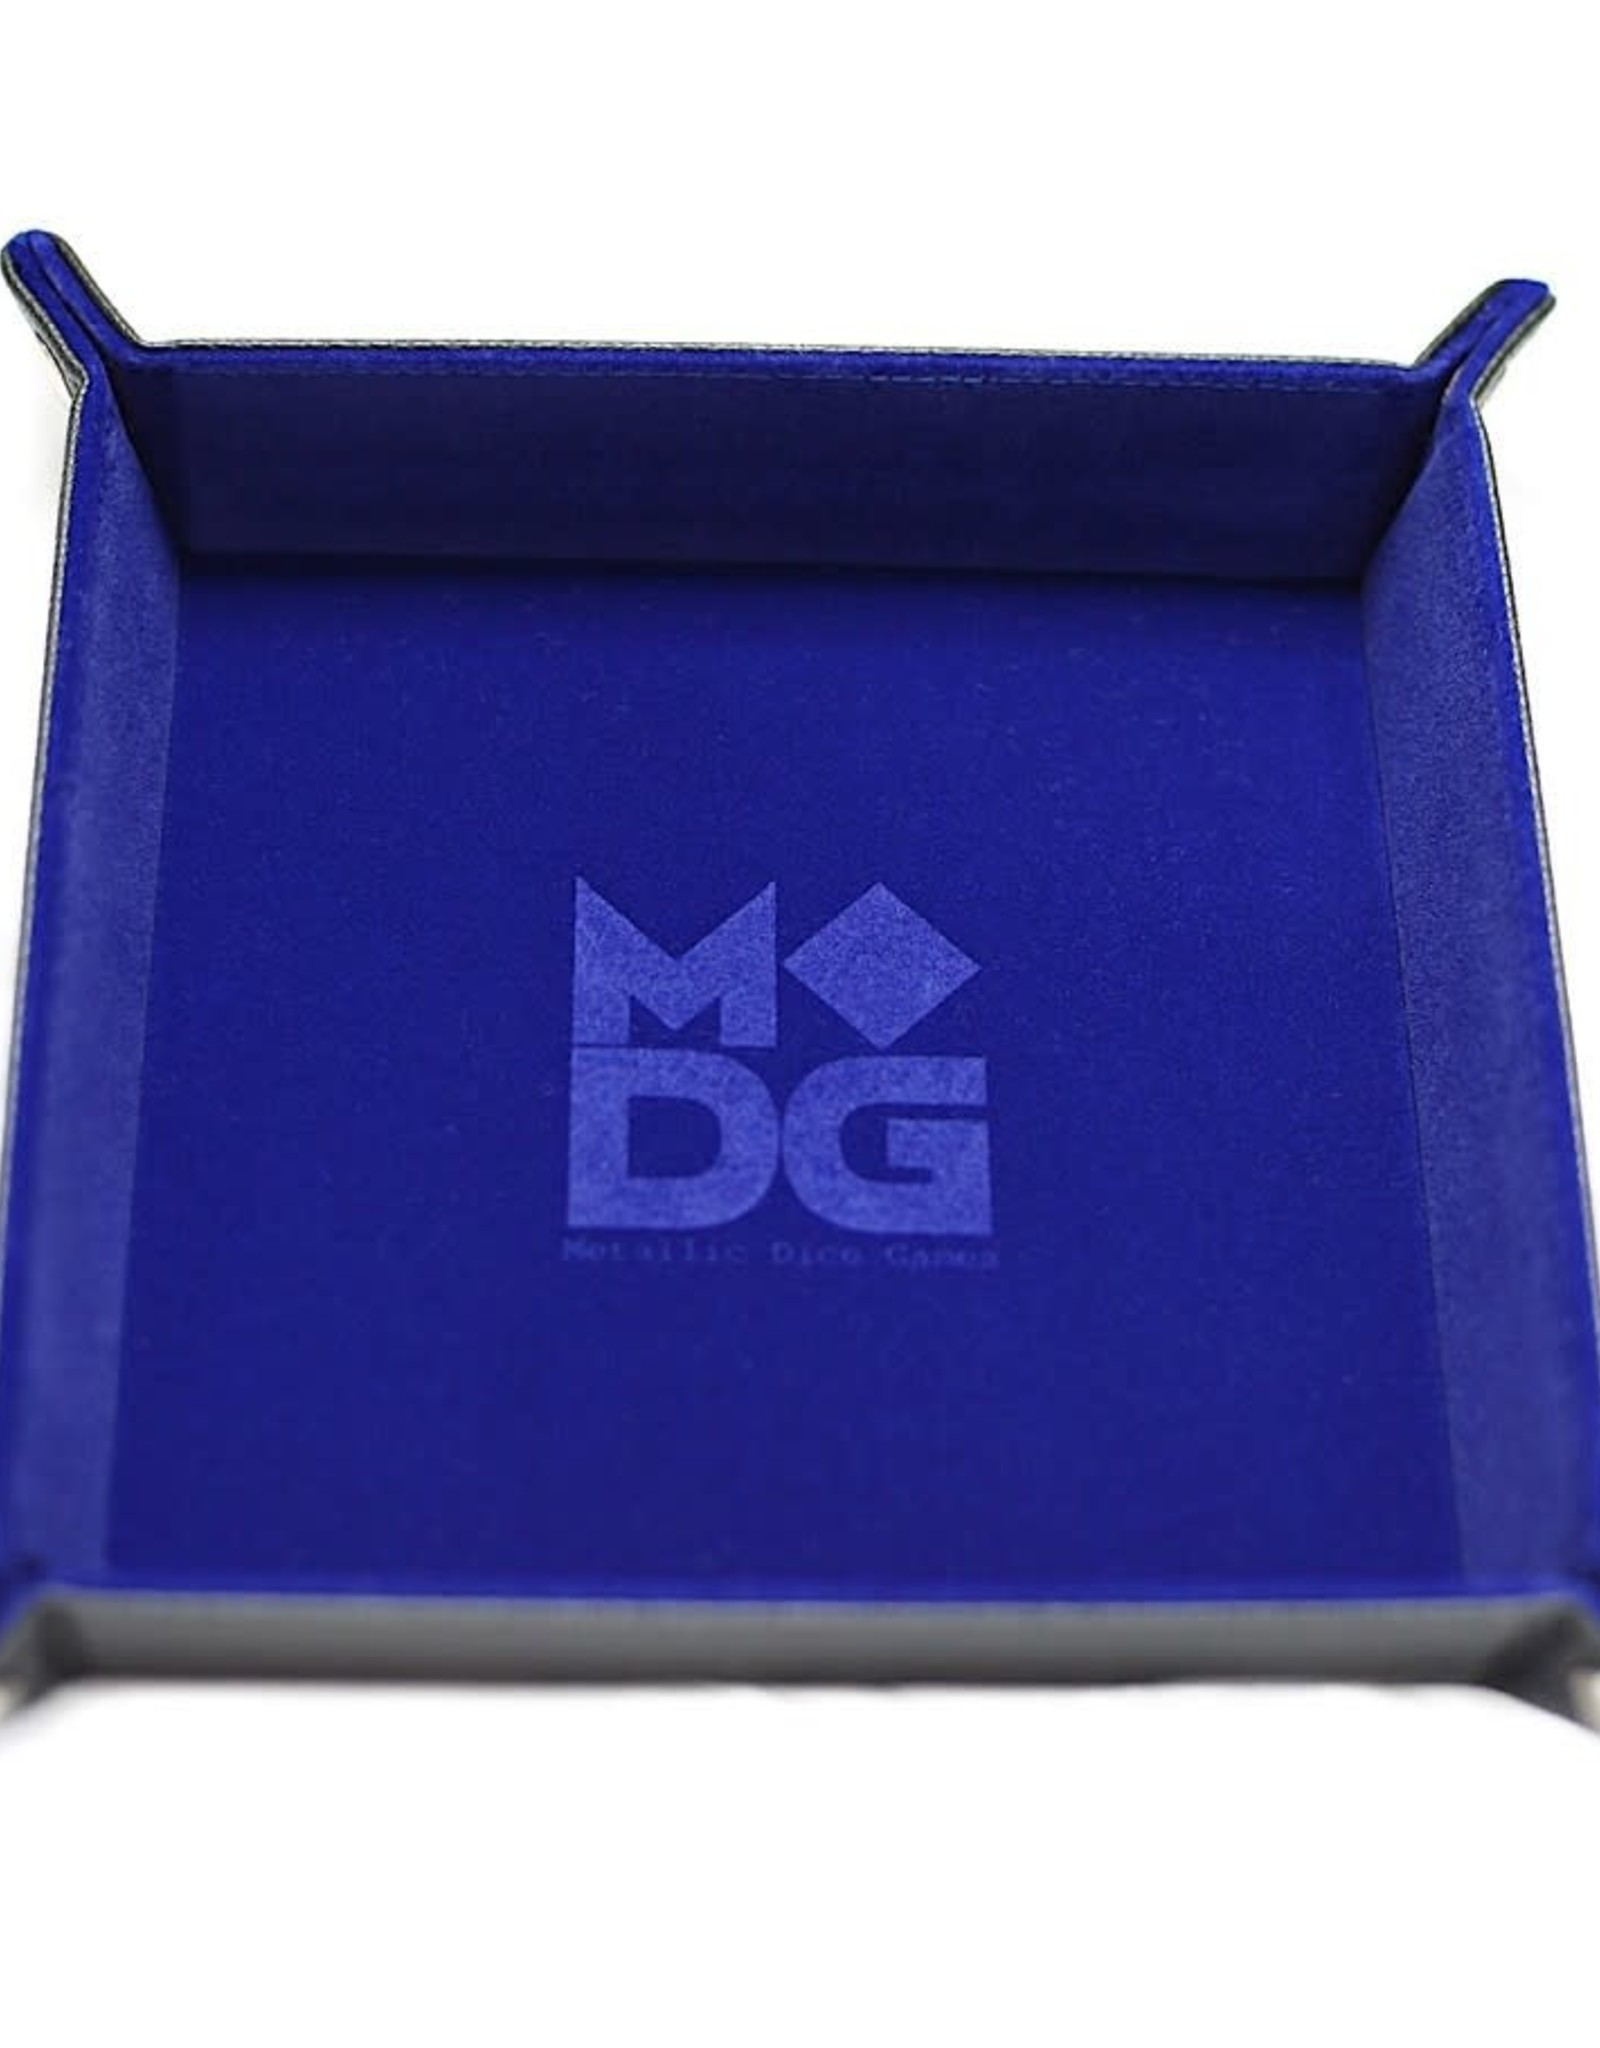 Metallic Dice Games Folding Dice Tray: Velvet with Leather Backing Blue